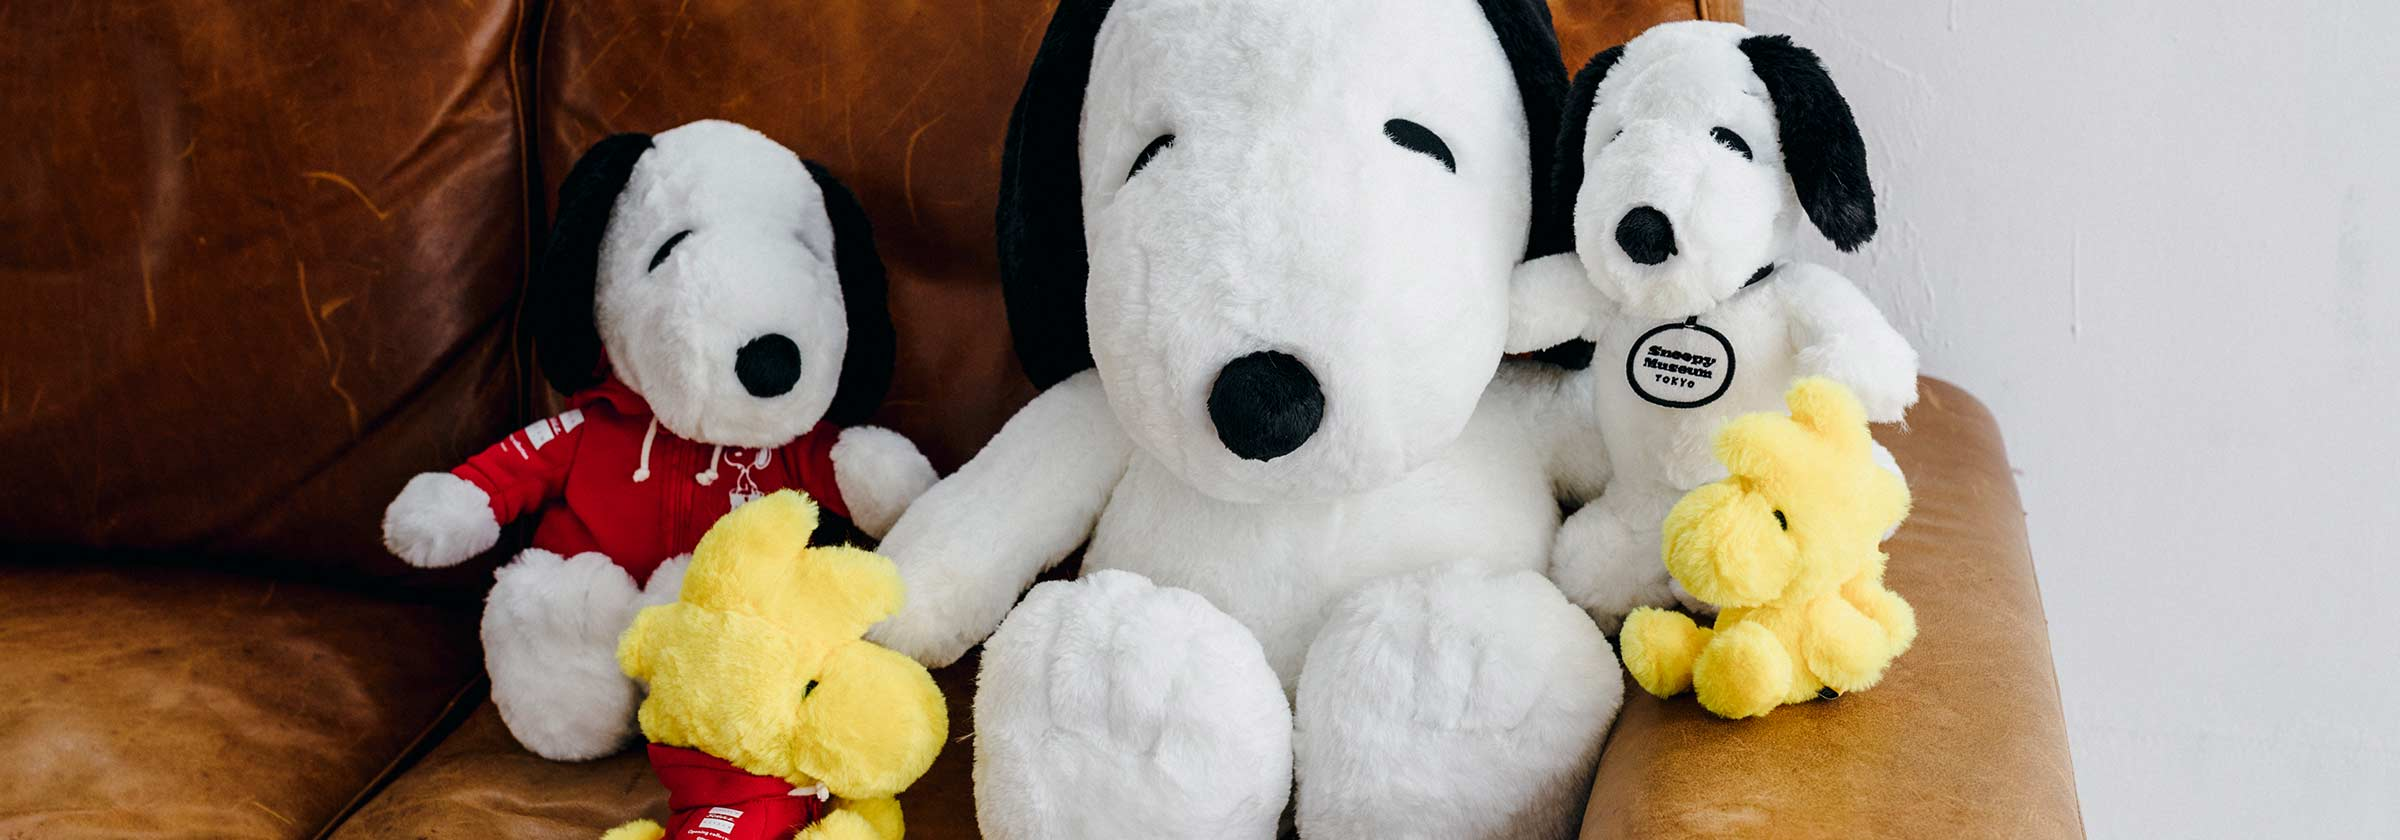 STORE|SNOOPY MUSEUM TOKYO